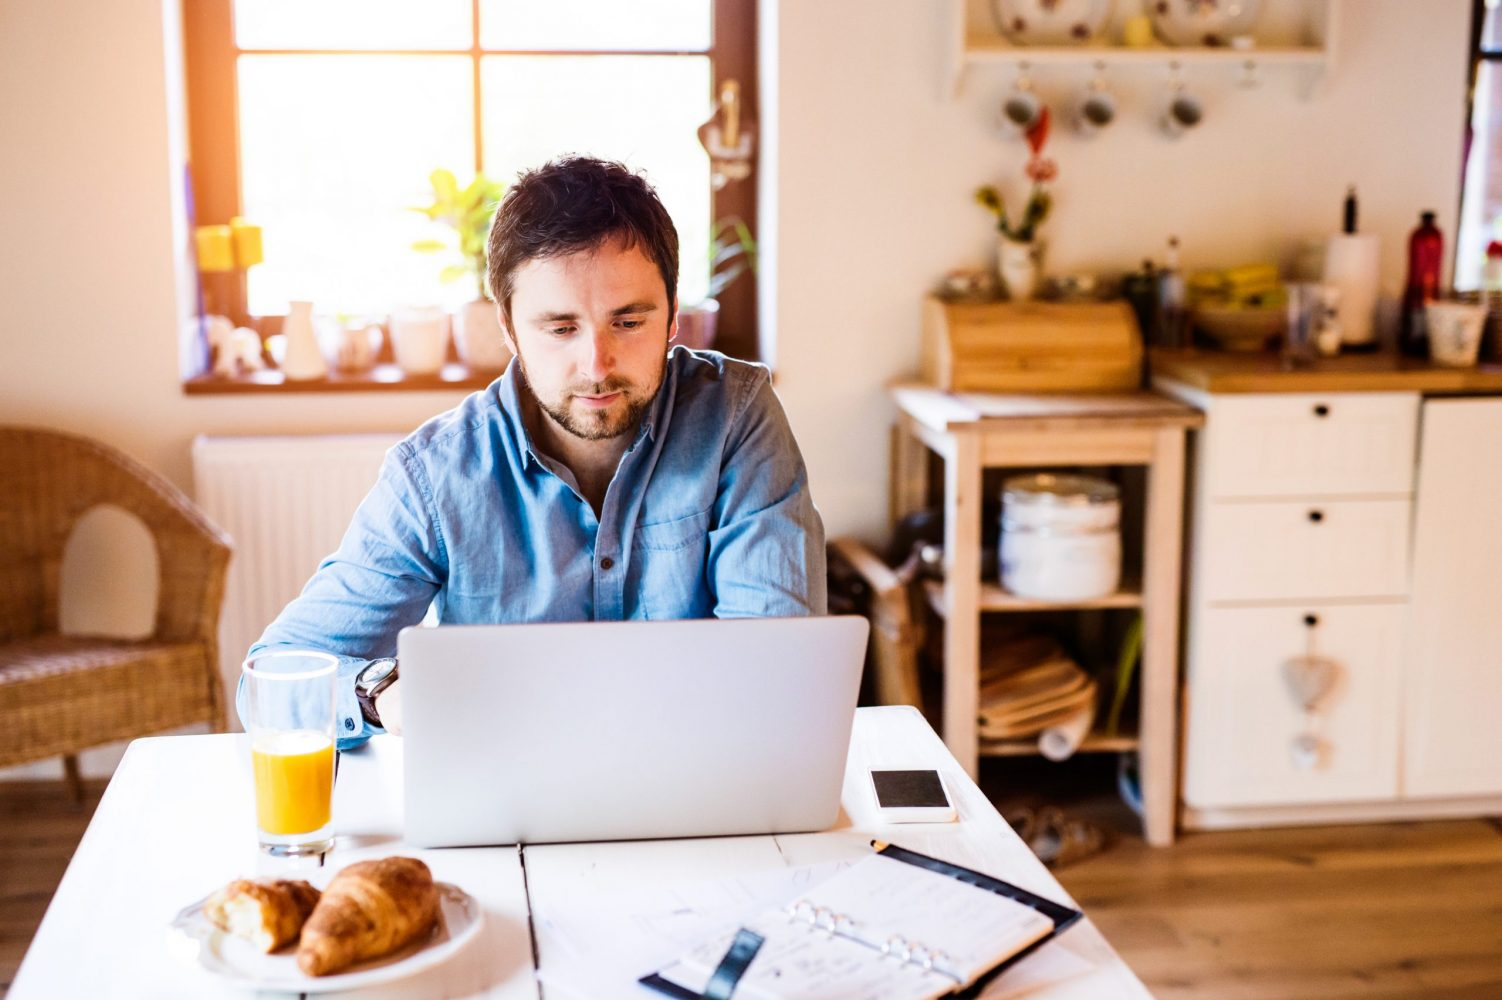 XpertHR survey reveals that homeworking is here to stay